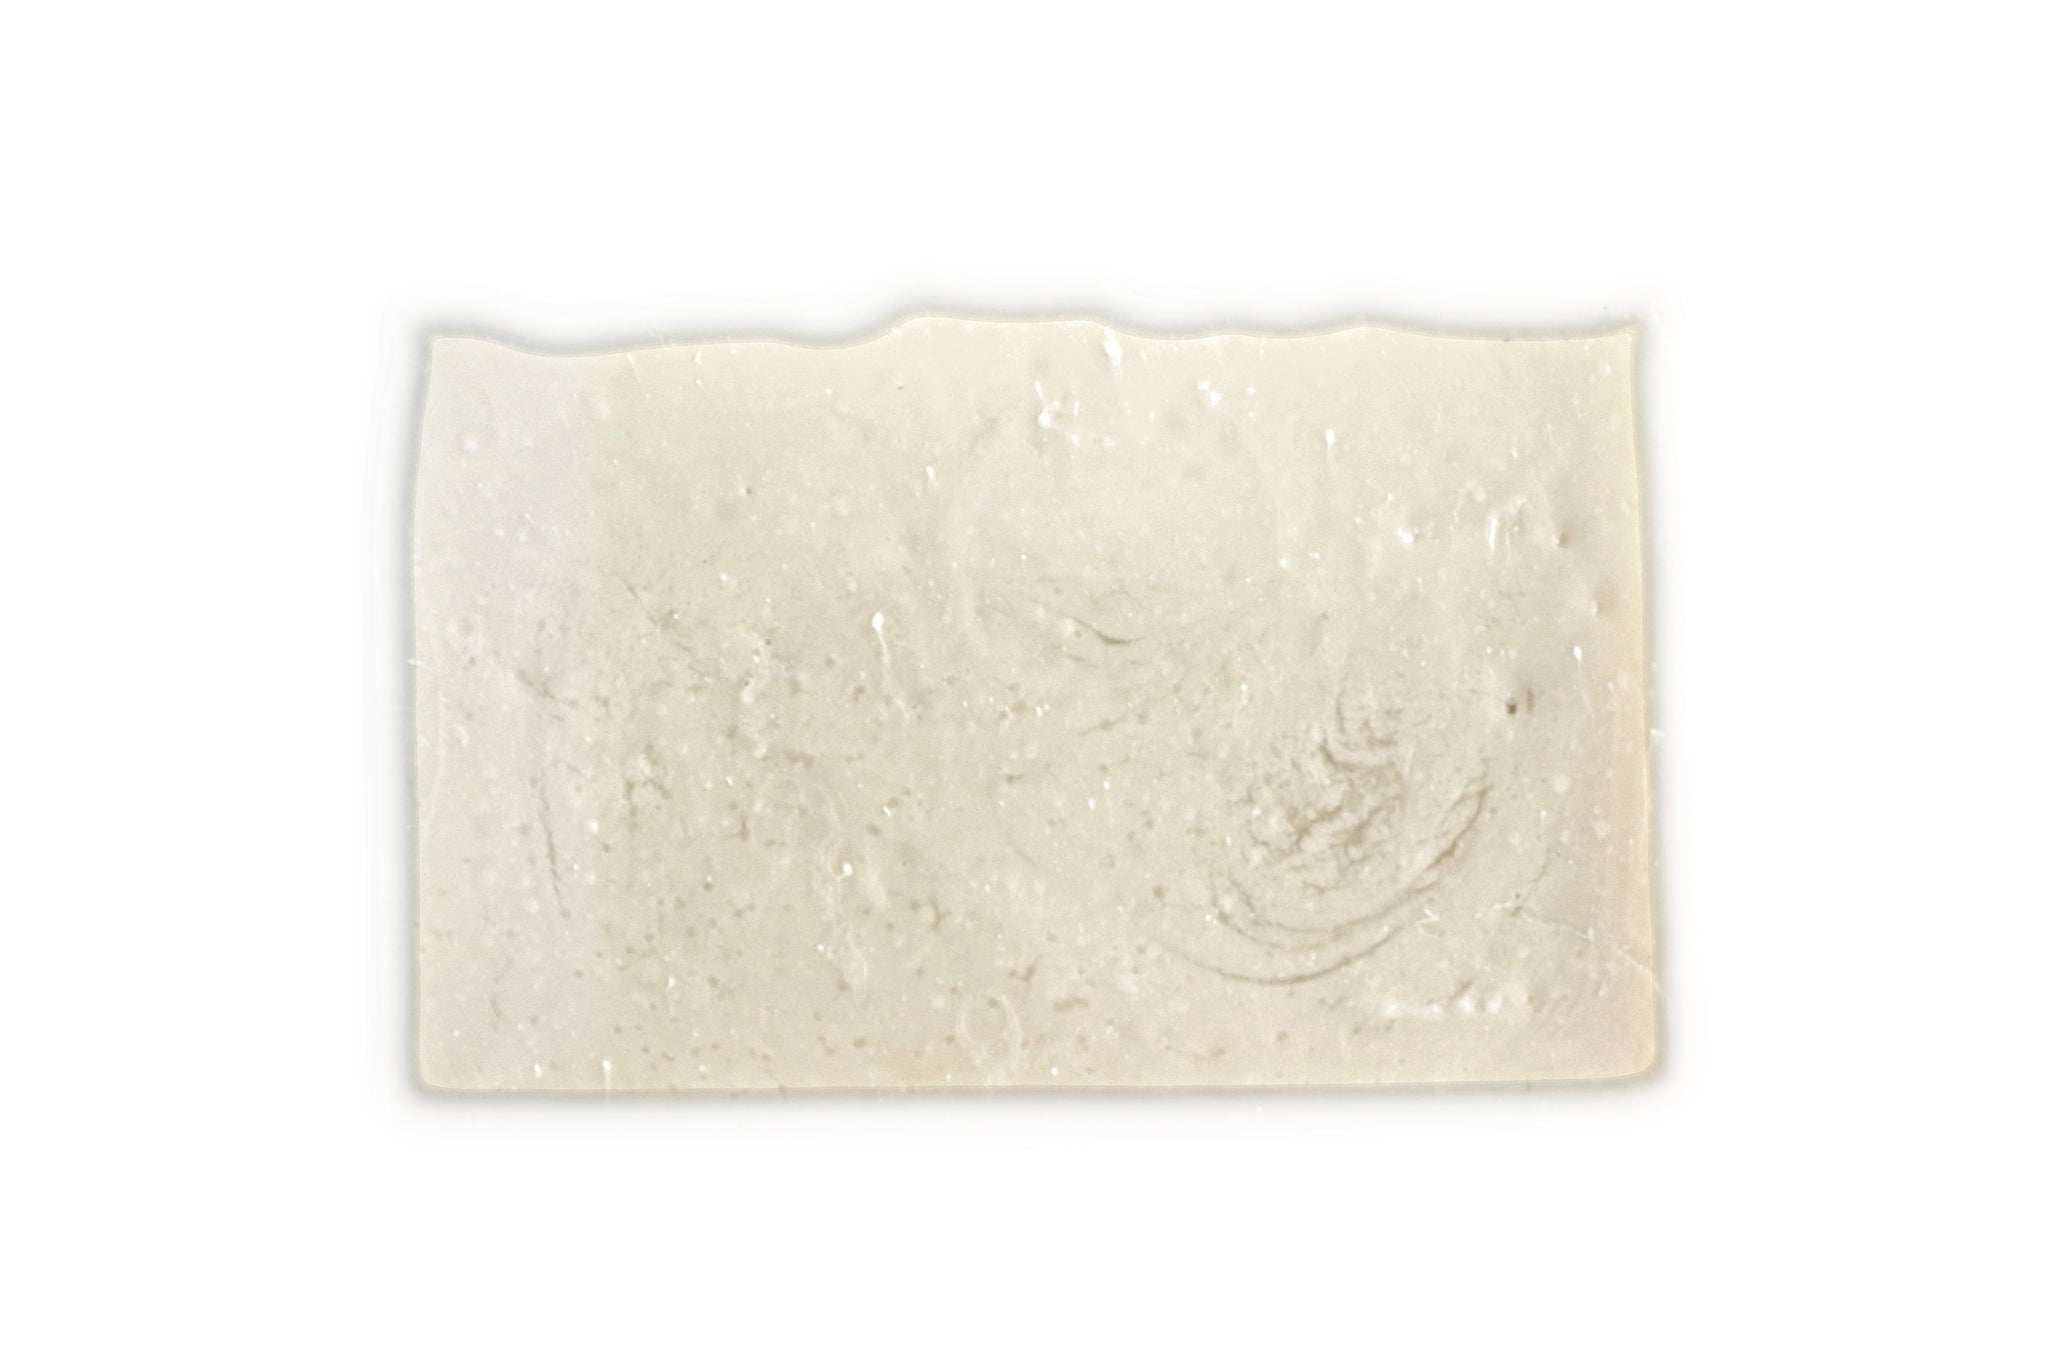 Squeaky Clean Soap Bar